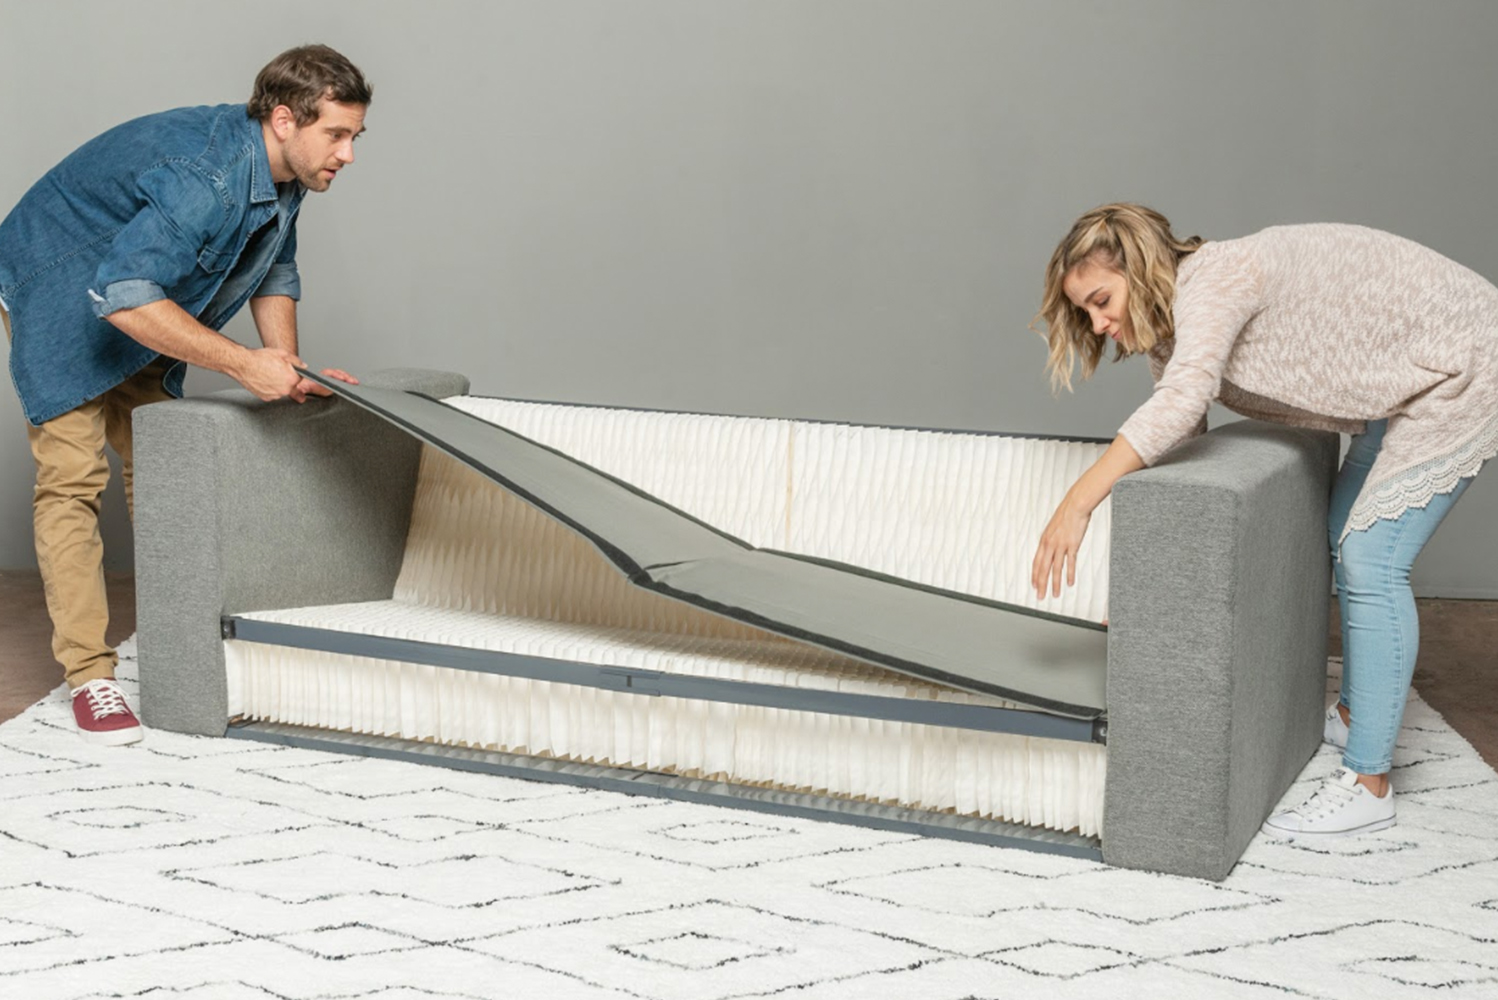 The honeycomb structure used in the sofa's base and back support is expandable and recovers its shape quickly after pressure is applied.